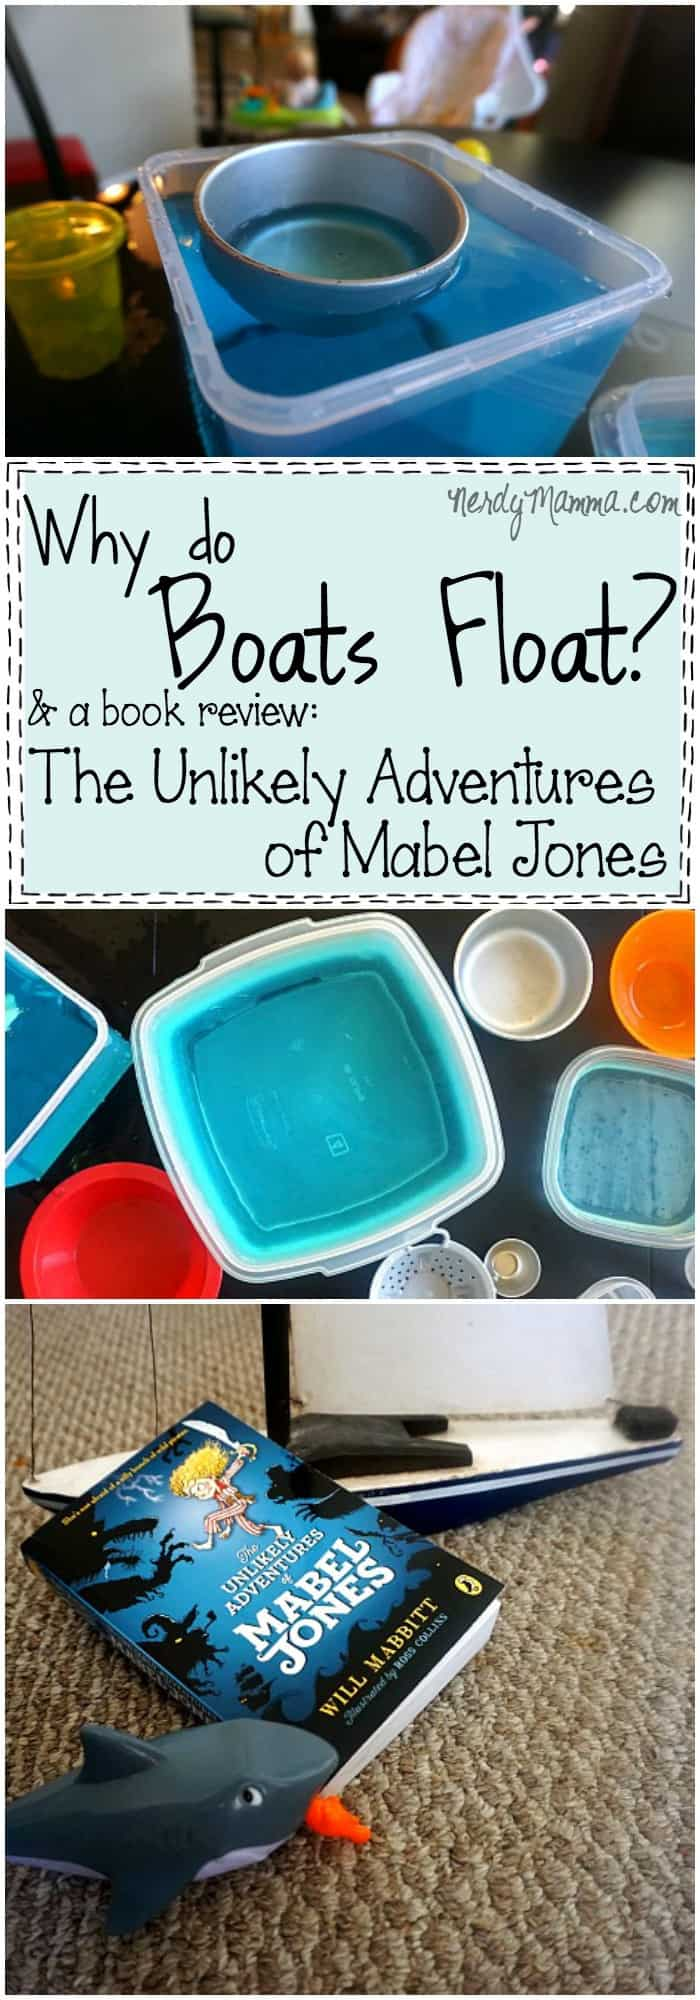 This is the funnest science experiment for talking about buoyancy and how boats float. And the book sounds cute, too!